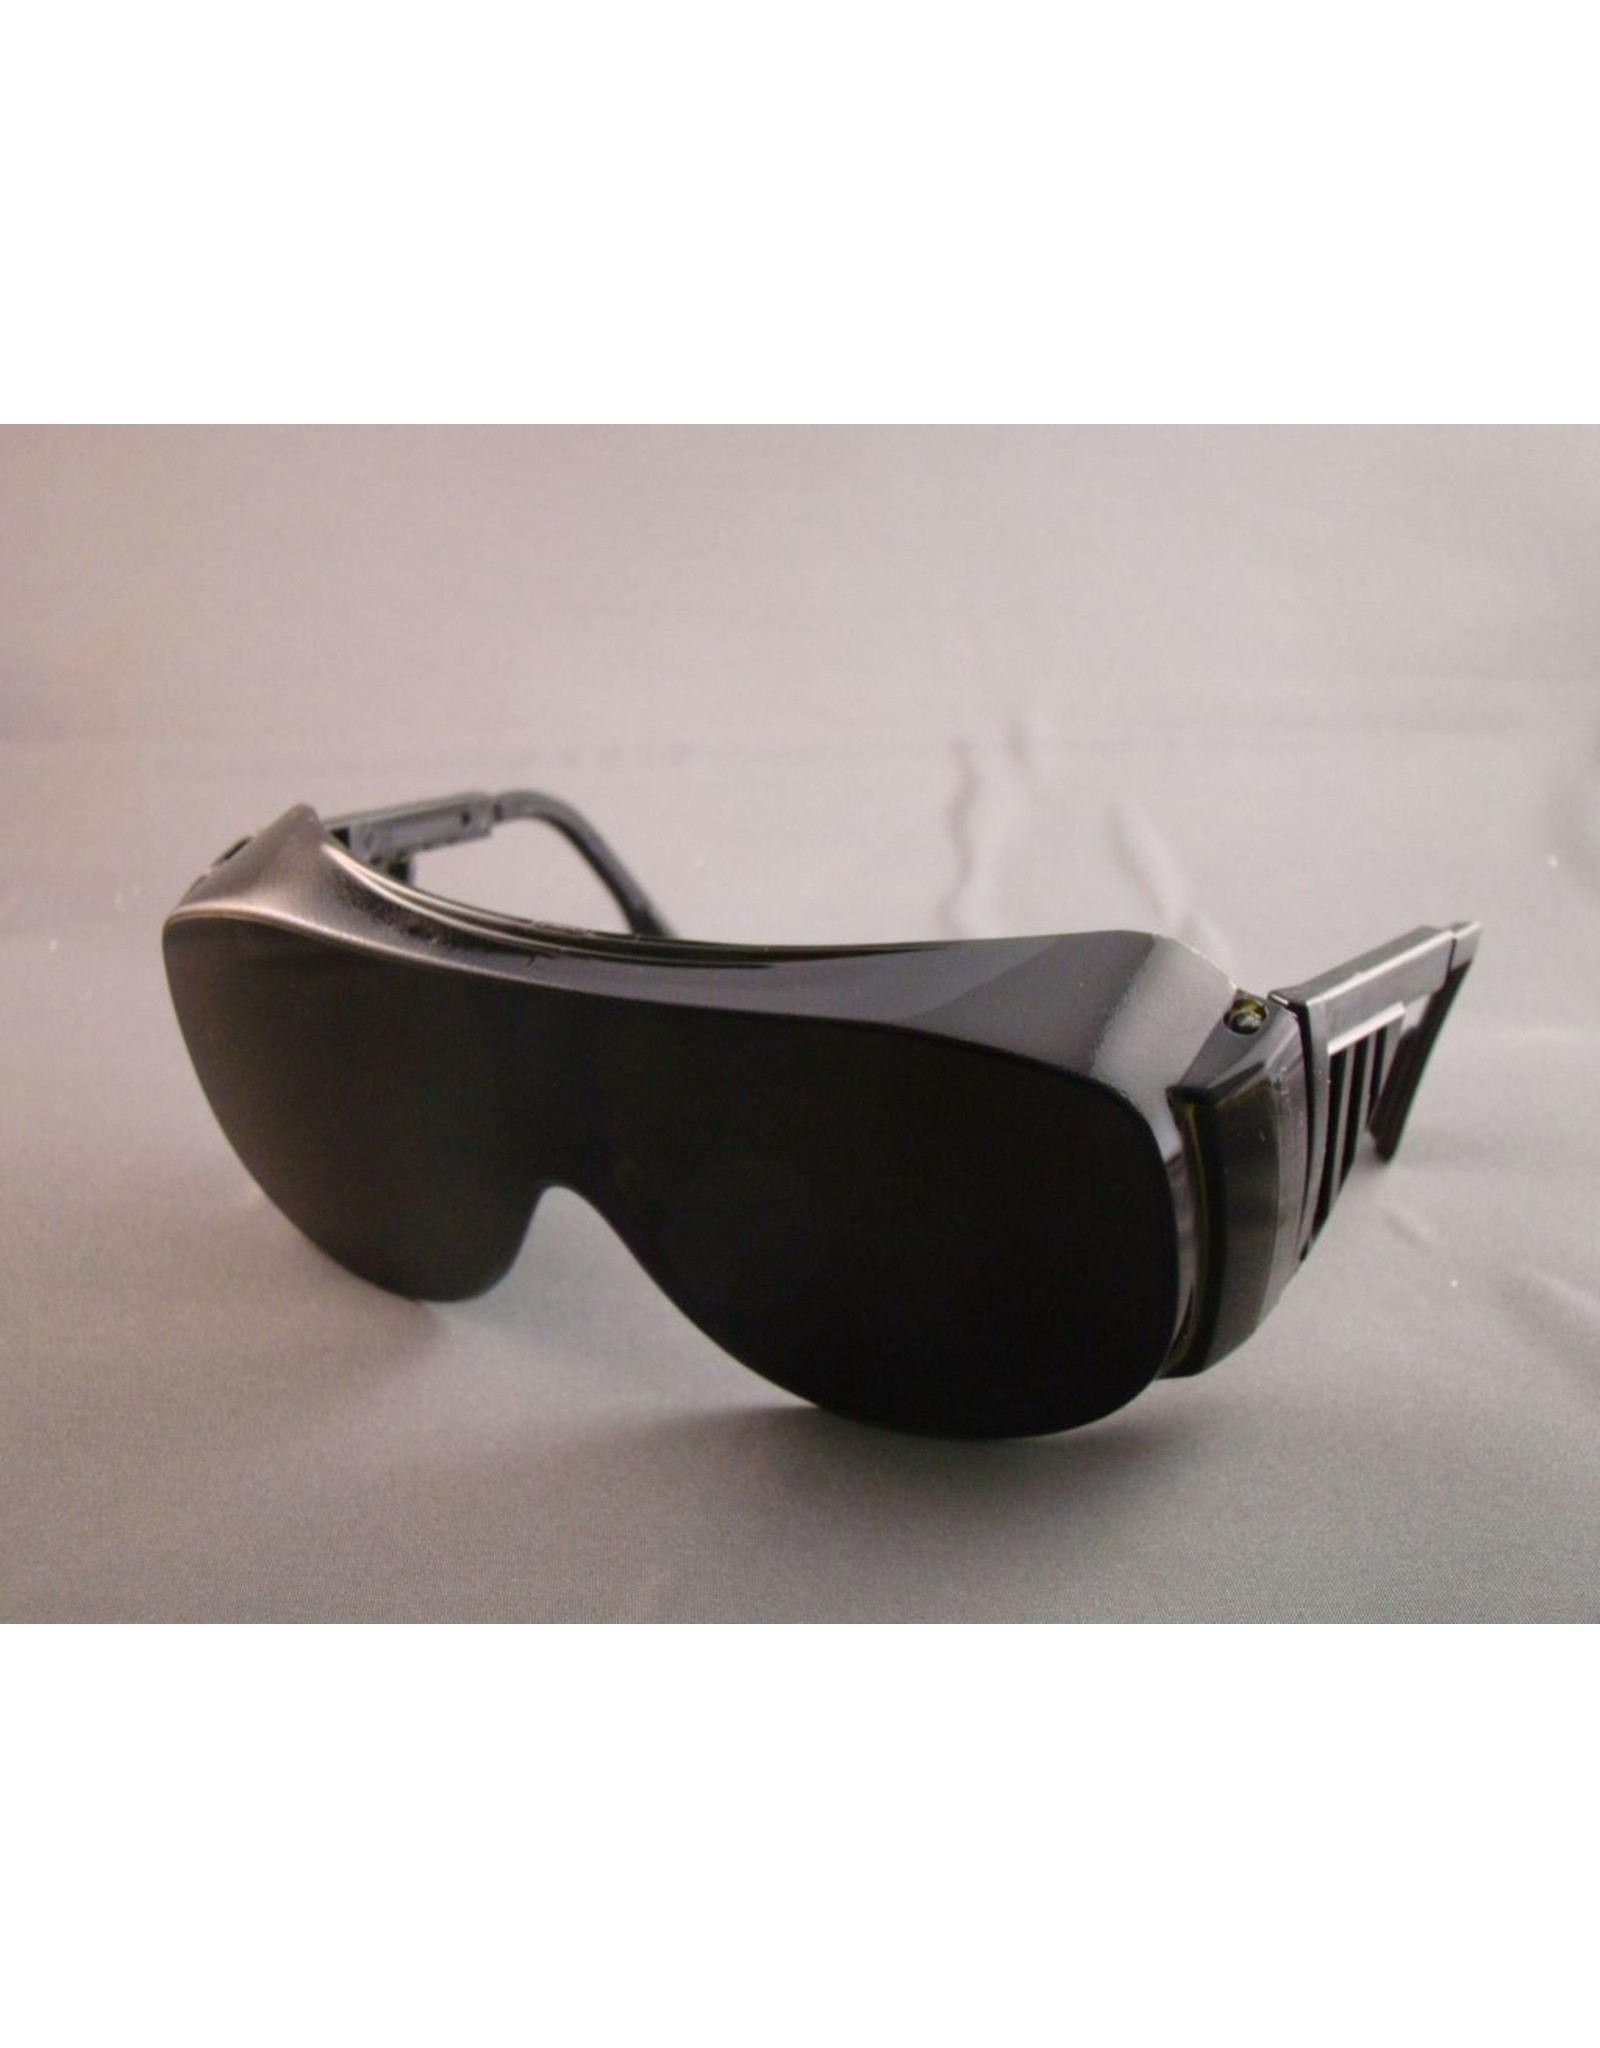 Uvex Anti Glare Glasses